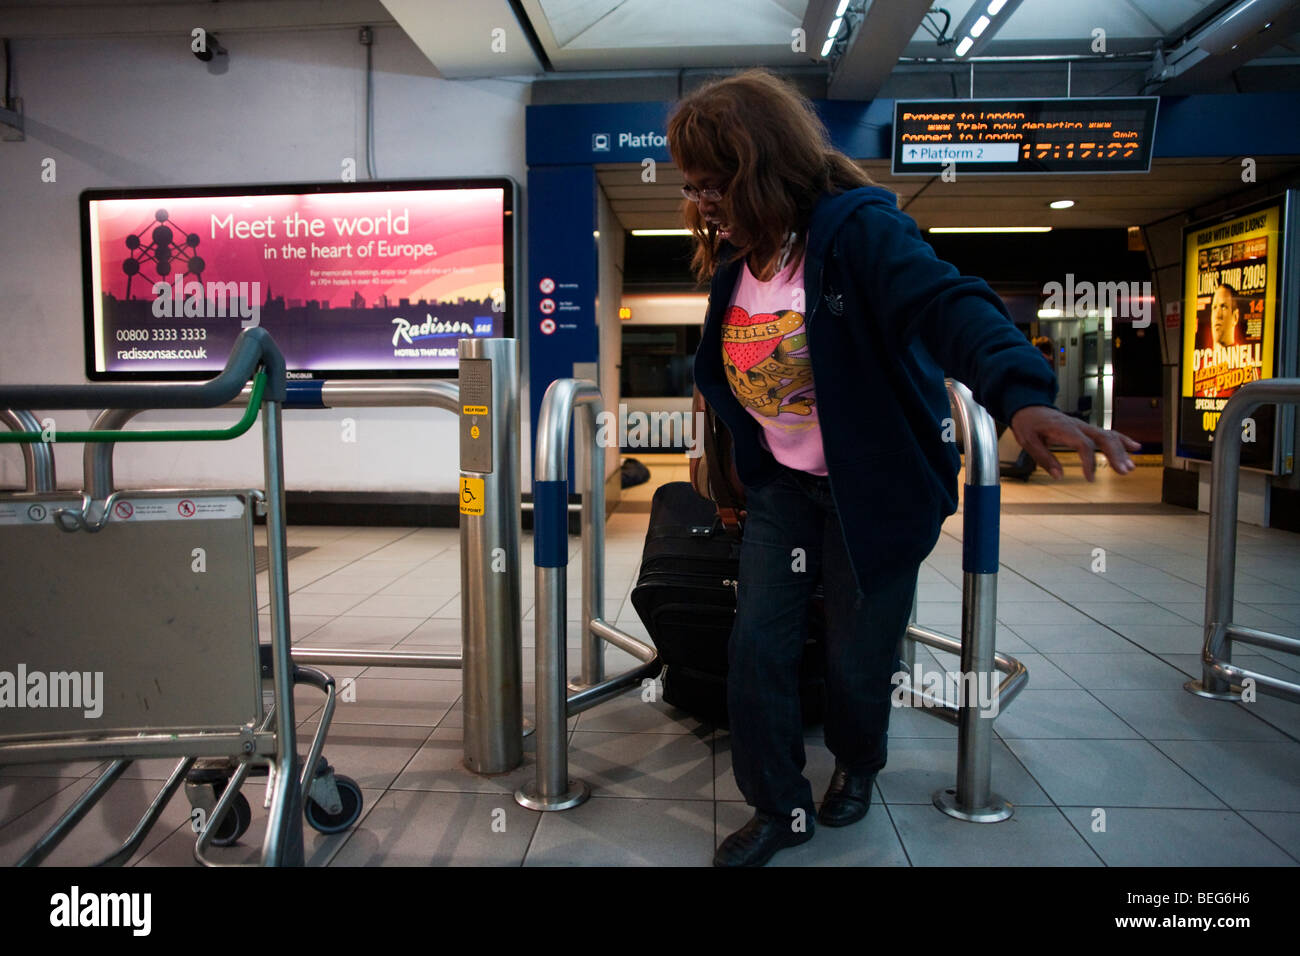 Heathrow Express passenger struggles through barrier in Heathrow train station at Heathrow's terminal 3. - Stock Image